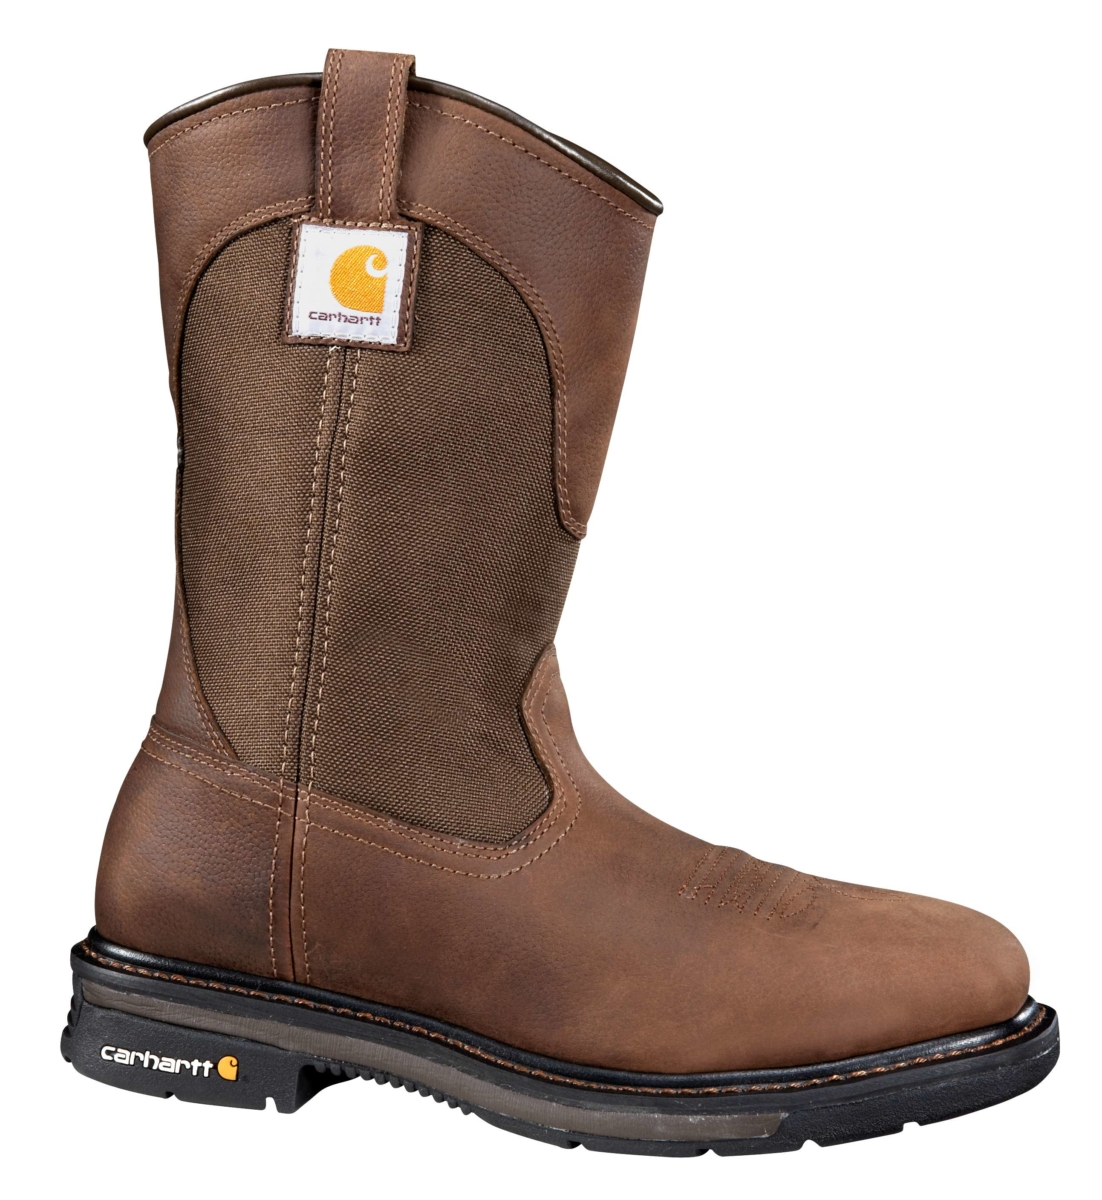 Carhartt 11-Inch Square Non-Safety Toe Wellington Boot Dark Bison Oil Tanned USA - GOOFASH - Mens BOOTS